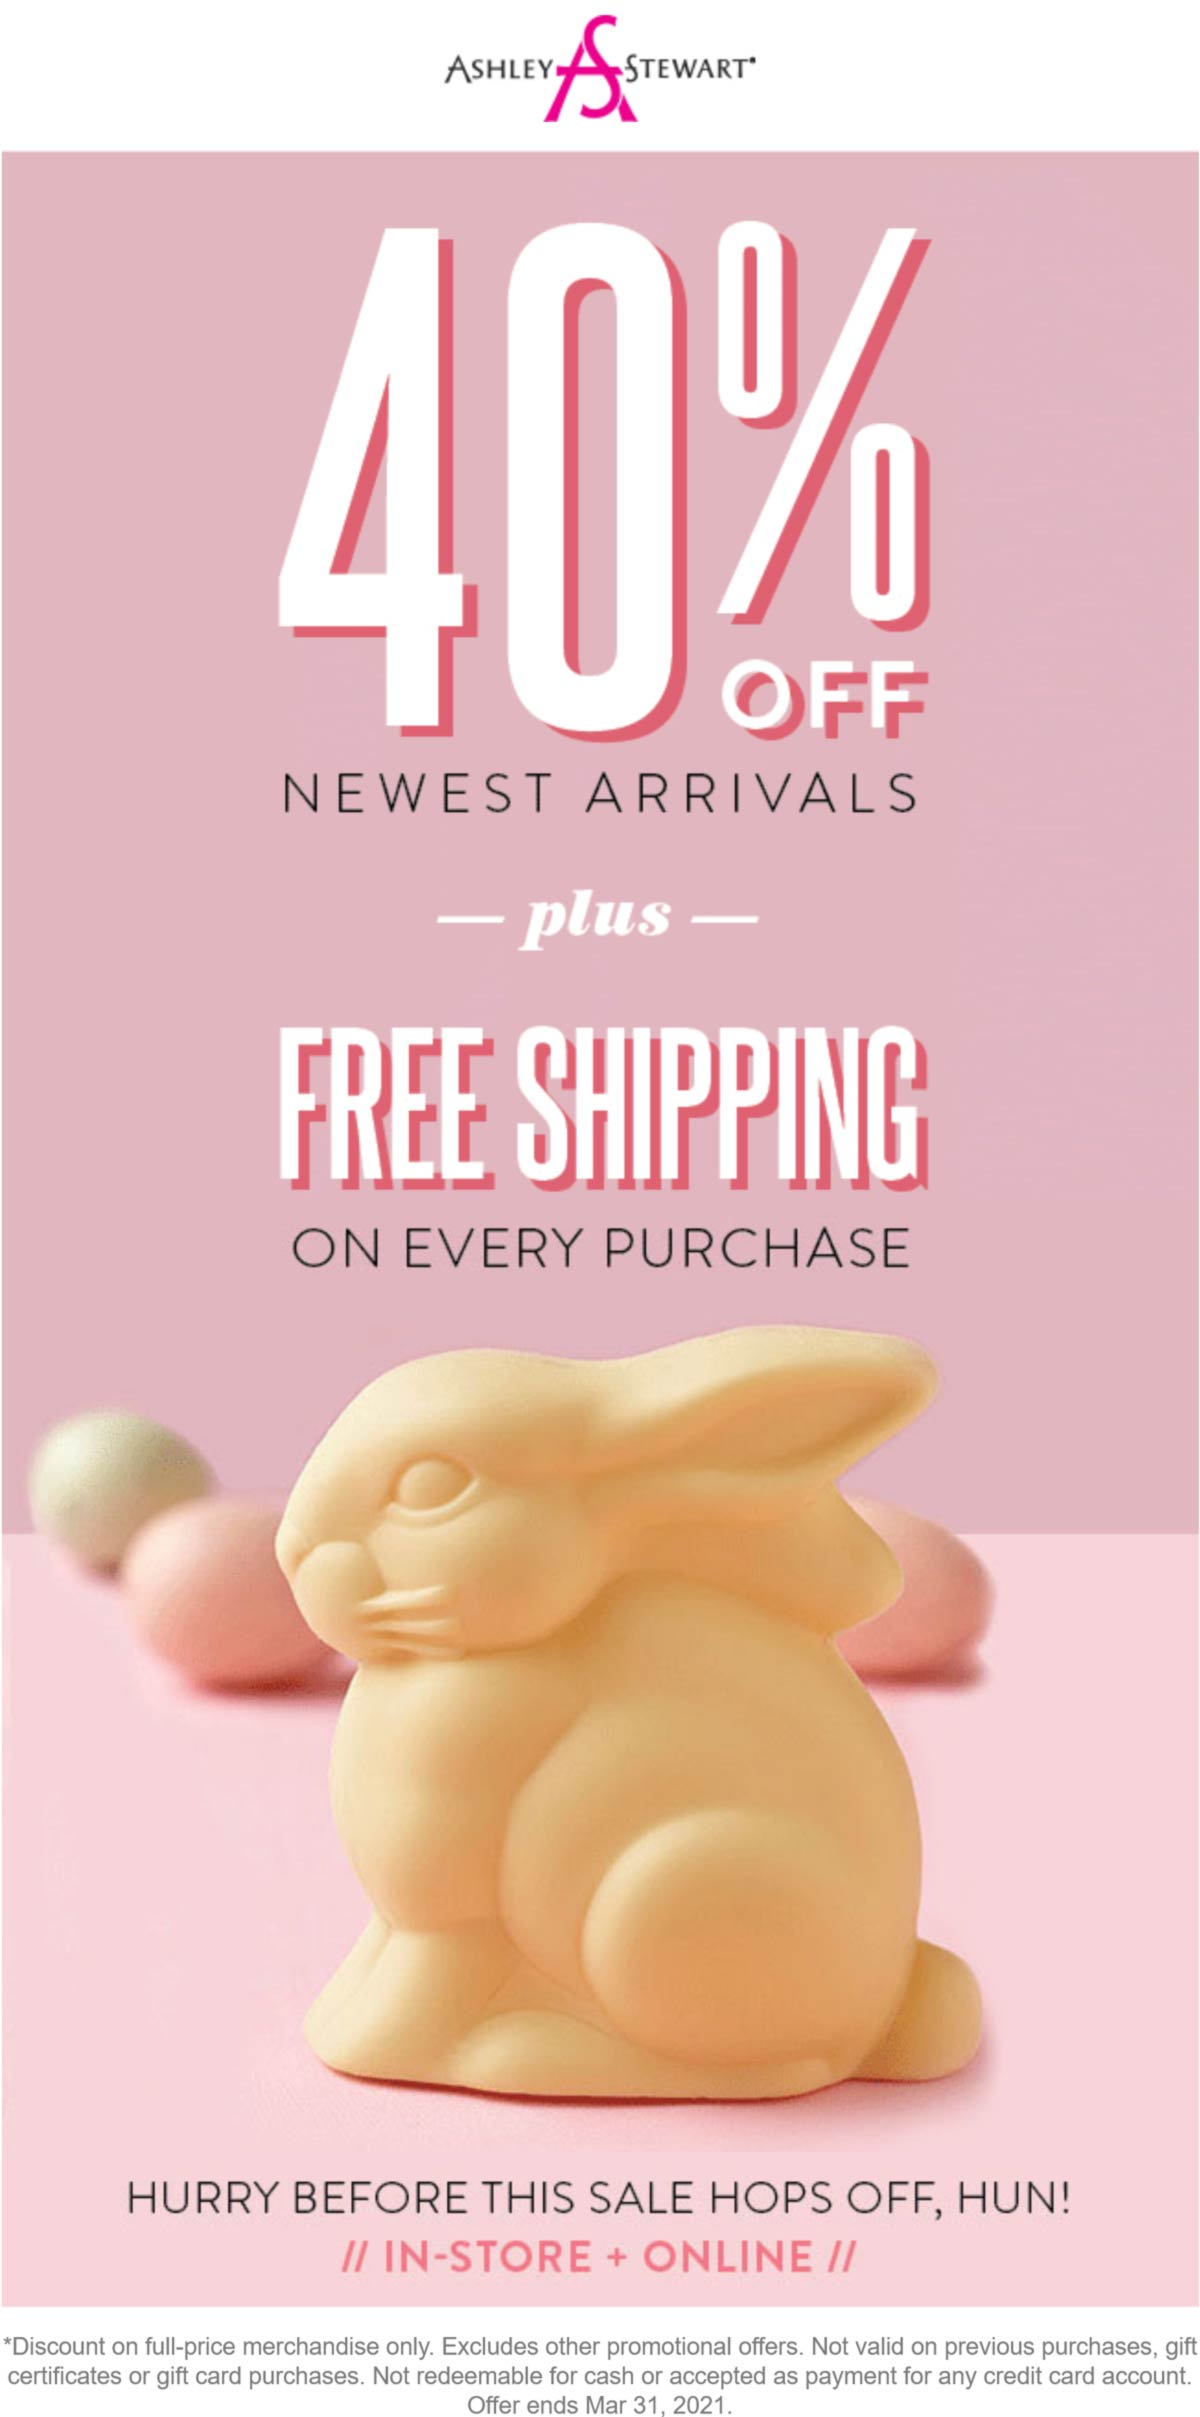 Ashley Stewart stores Coupon  40% off new arrivals today at Ashley Stewart #ashleystewart